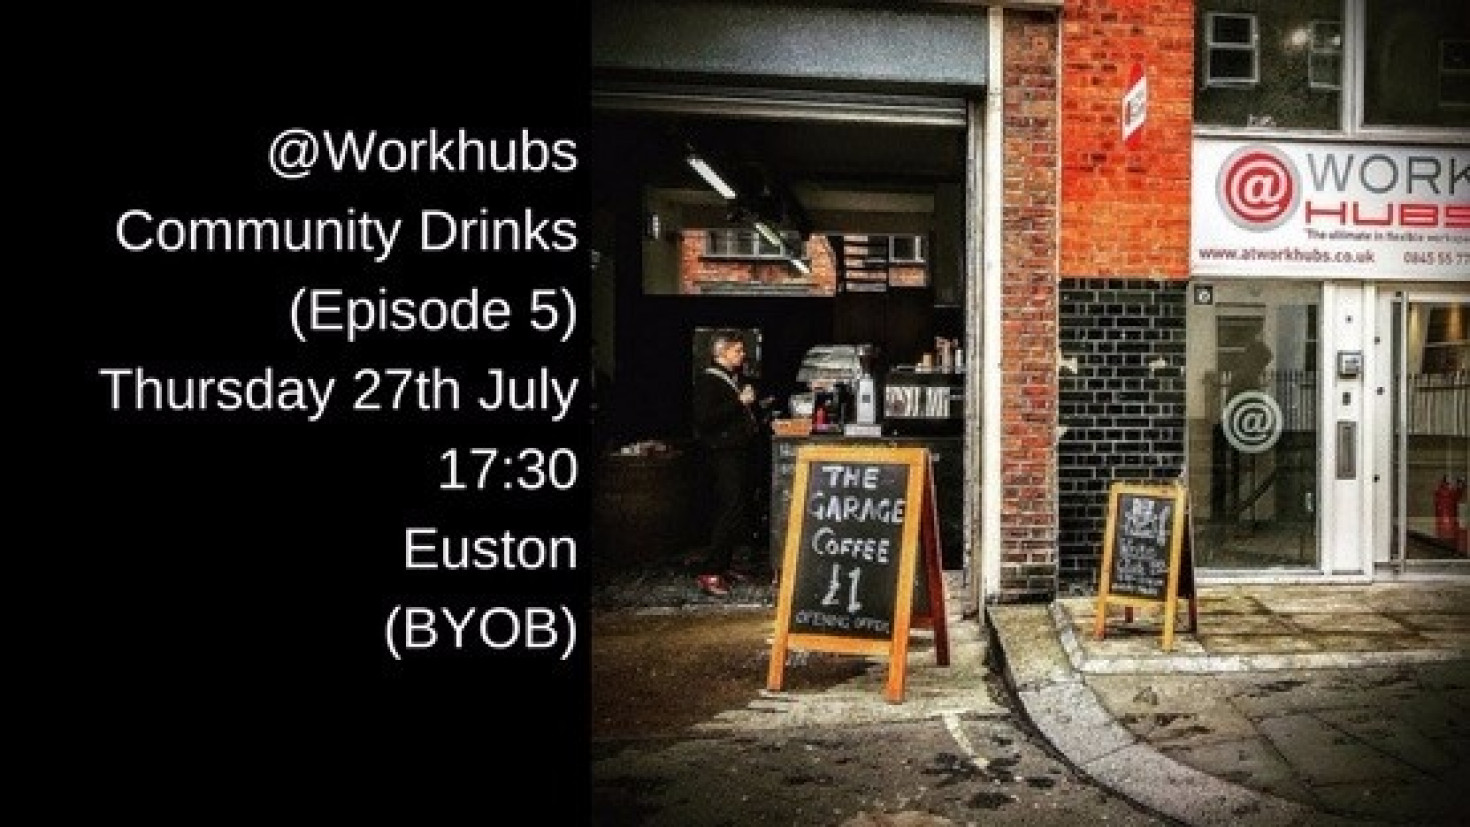 @WorkHubs Community Drinks (Episode 5)